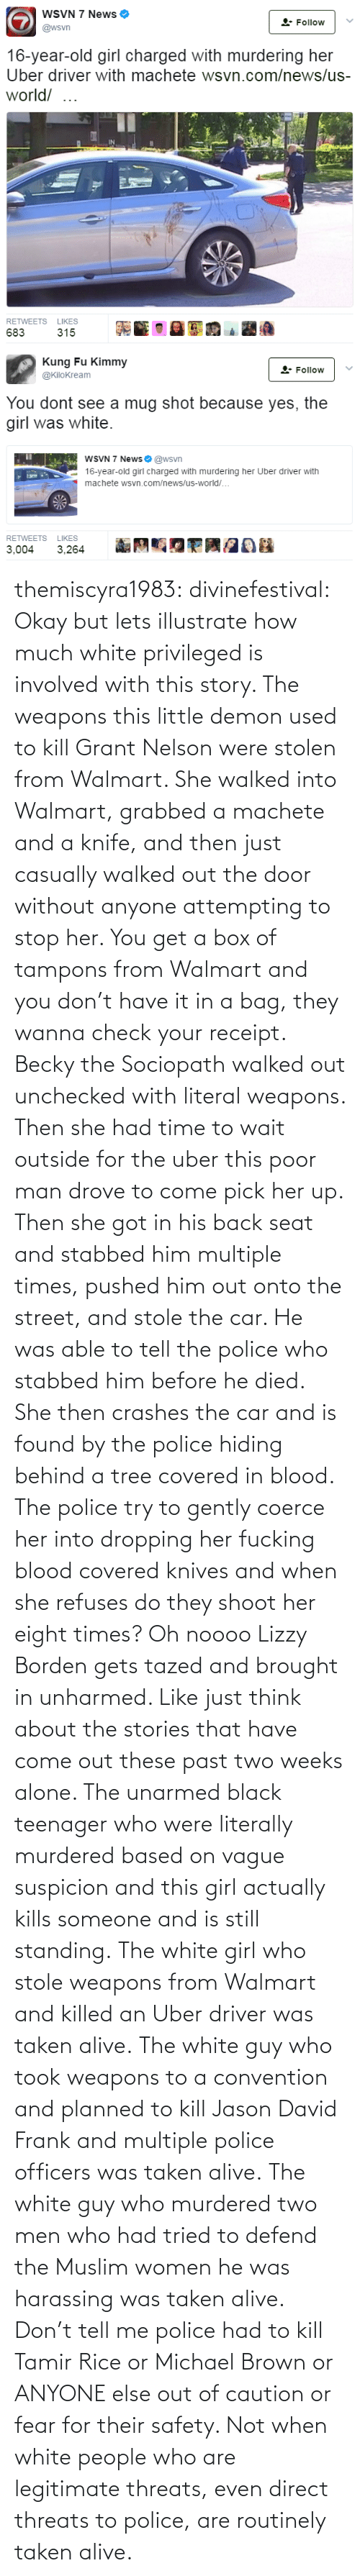 Fear: themiscyra1983:  divinefestival:  Okay but lets illustrate how much white privileged is involved with this story. The weapons this little demon used to kill Grant Nelson were stolen from Walmart. She walked into Walmart, grabbed a machete and a knife, and then just casually walked out the door without anyone attempting to stop her. You get a box of tampons from Walmart and you don't have it in a bag, they wanna check your receipt. Becky the Sociopath walked out unchecked with literal weapons.  Then she had time to wait outside for the uber this poor man drove to come pick her up. Then she got in his back seat and stabbed him multiple times, pushed him out onto the street, and stole the car. He was able to tell the police who stabbed him before he died. She then crashes the car and is found by the police hiding behind a tree covered in blood. The police try to gently coerce her into dropping her fucking blood covered knives and when she refuses do they shoot her eight times? Oh noooo Lizzy Borden gets tazed and brought in unharmed.  Like just think about the stories that have come out these past two weeks alone. The unarmed black teenager who were literally murdered based on vague suspicion and this girl actually kills someone and is still standing.   The white girl who stole weapons from Walmart and killed an Uber driver was taken alive. The white guy who took weapons to a convention and planned to kill Jason David Frank and multiple police officers was taken alive. The white guy who murdered two men who had tried to defend the Muslim women he was harassing was taken alive. Don't tell me police had to kill Tamir Rice or Michael Brown or ANYONE else out of caution or fear for their safety. Not when white people who are legitimate threats, even direct threats to police, are routinely taken alive.